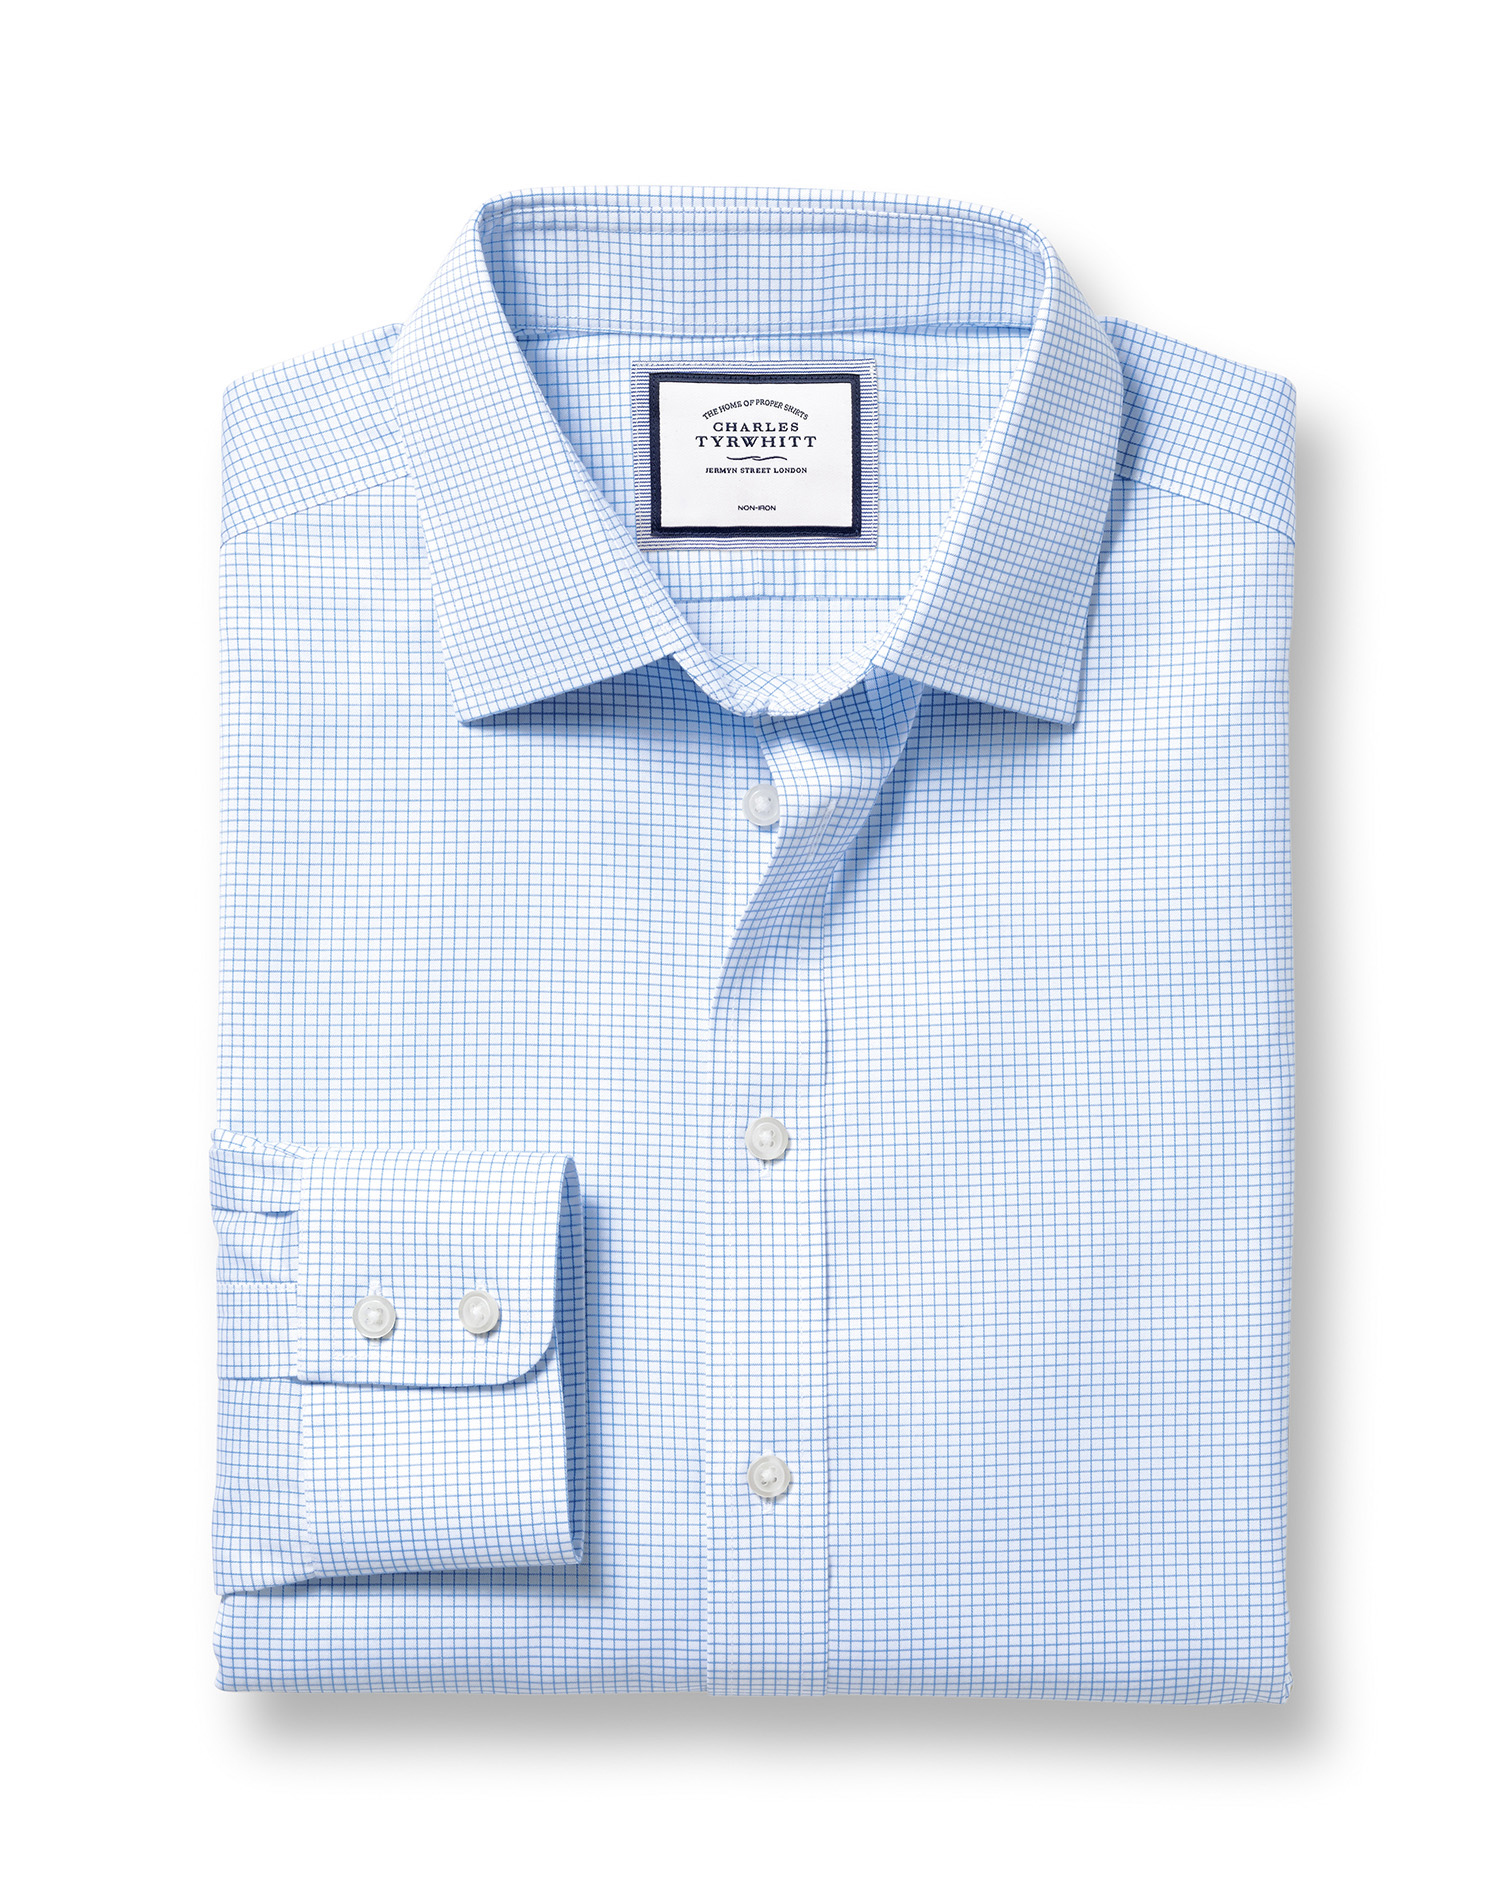 Extra Slim Fit Non-Iron Twill Mini Grid Check Sky Blue Cotton Formal Shirt Double Cuff Size 14.5/33